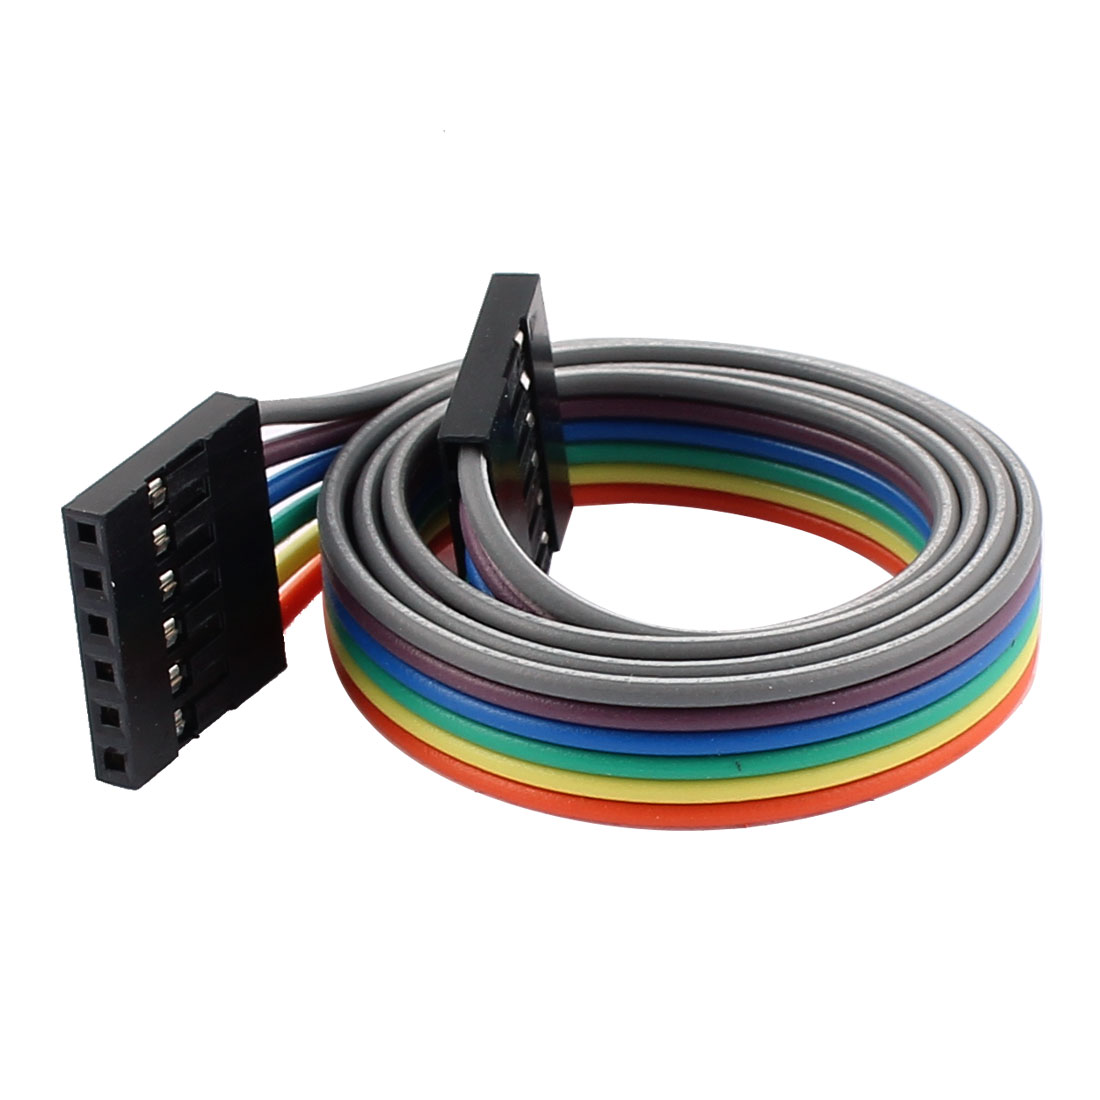 2.54mm Pitch 6P Female Breadboard Double Head Jumper Wire Cable 40cm Length